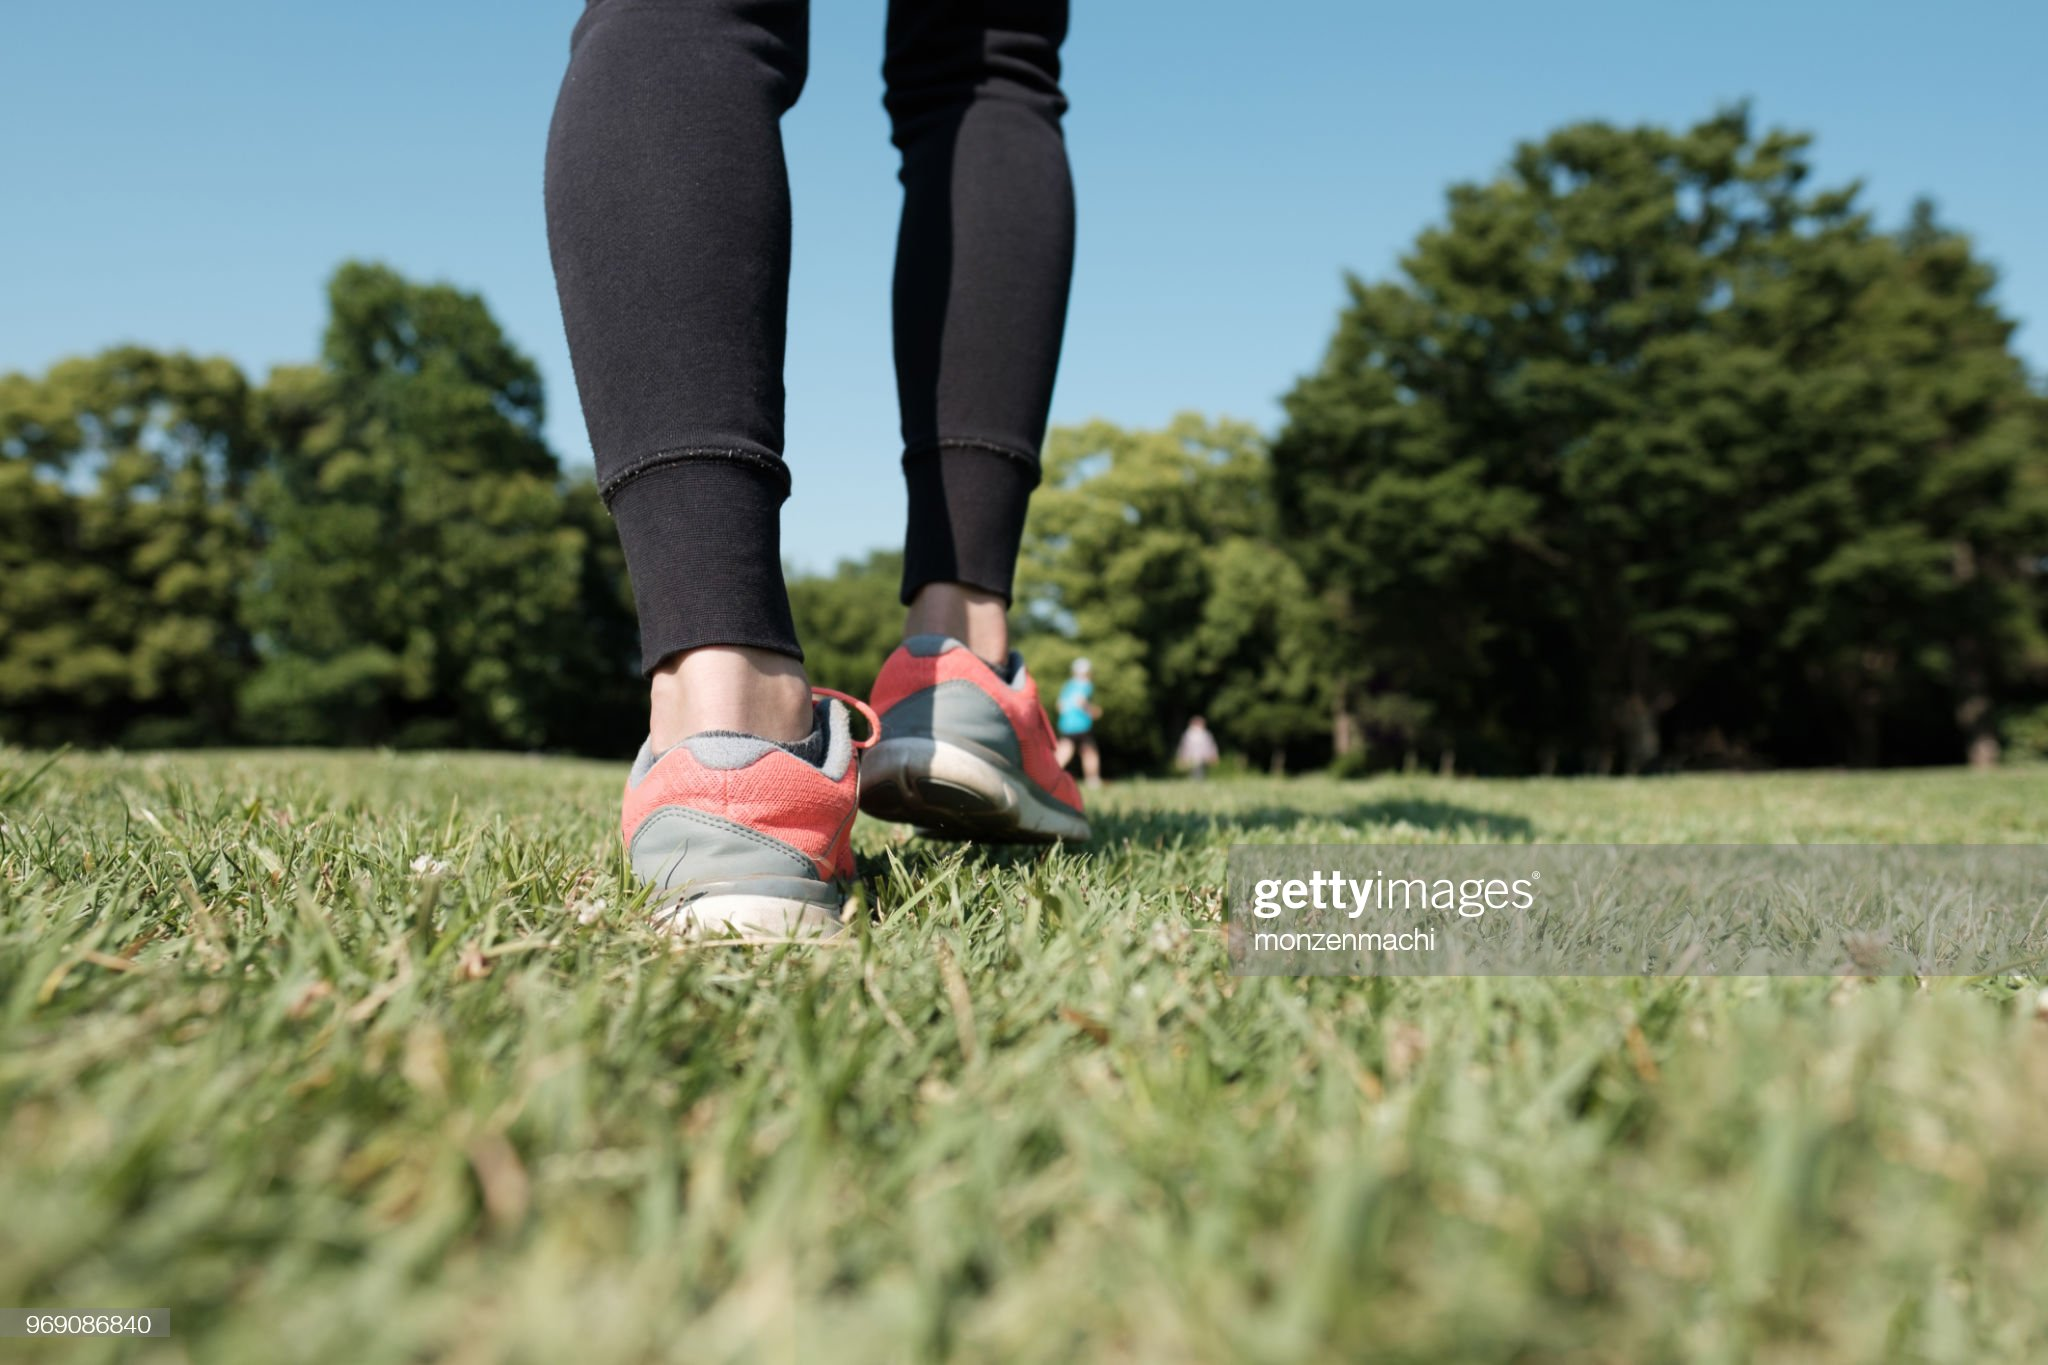 https://media.gettyimages.com/photos/closeup-of-sport-shoes-walking-on-grass-picture-id969086840?s=2048x2048